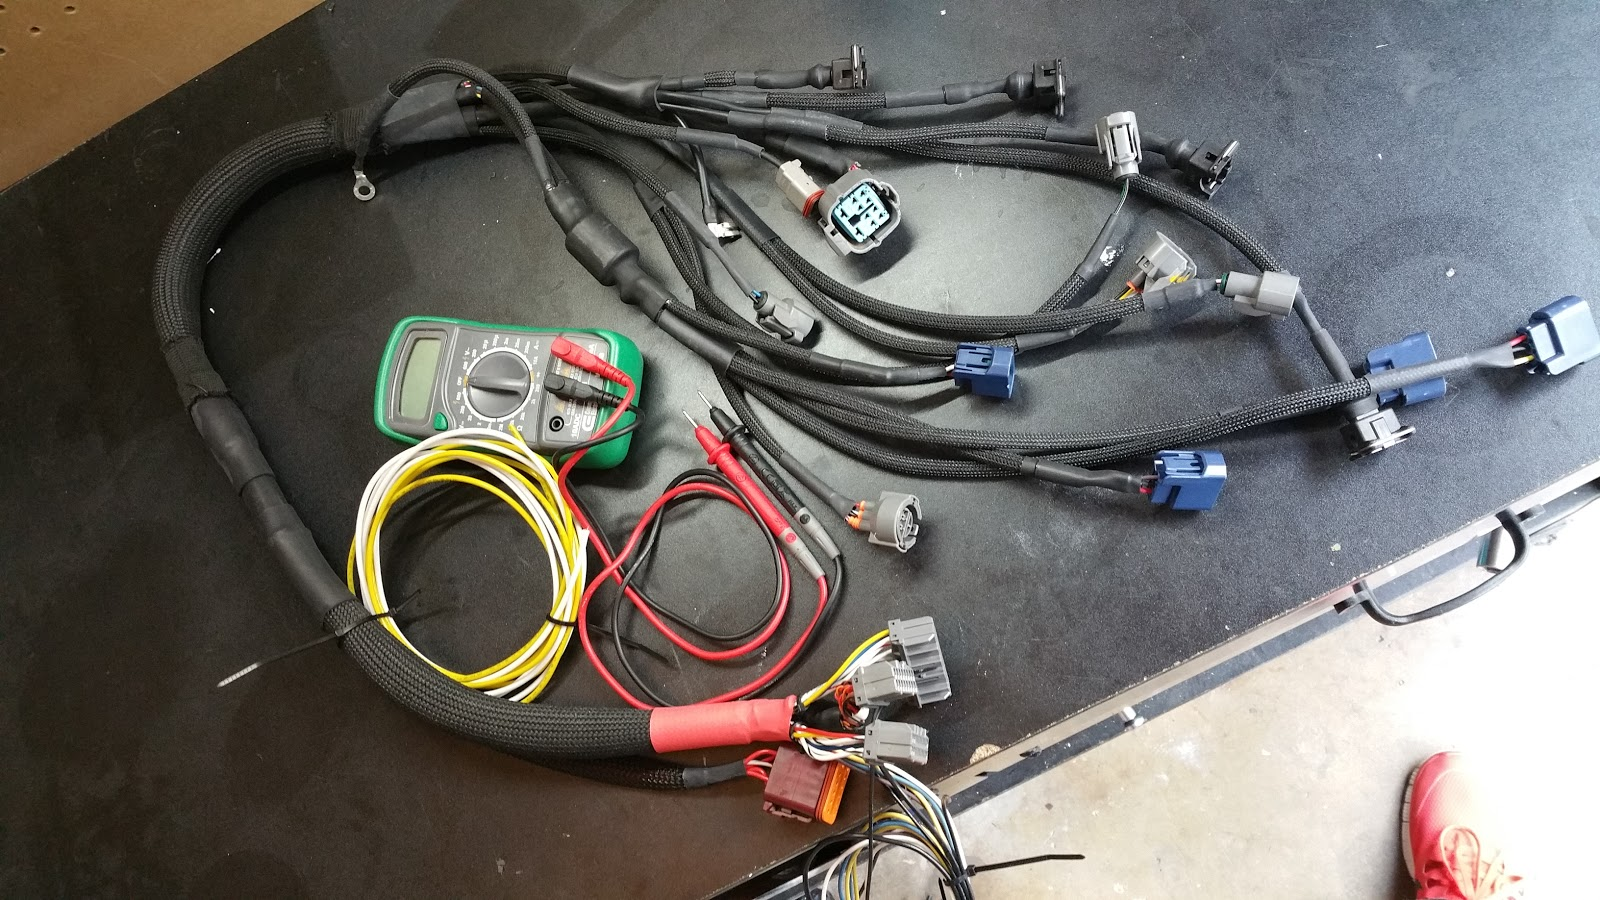 Ill Villain Wait You Said Crx Right Ae86 Wiring Diagrams Found These I39m Not Very Good At Reading During The Testing As A Sanity Check I Stripped Parts Of T Offs From Outter Loom So Id Be Able To Verify Wire Color And Which Branch They Went Too